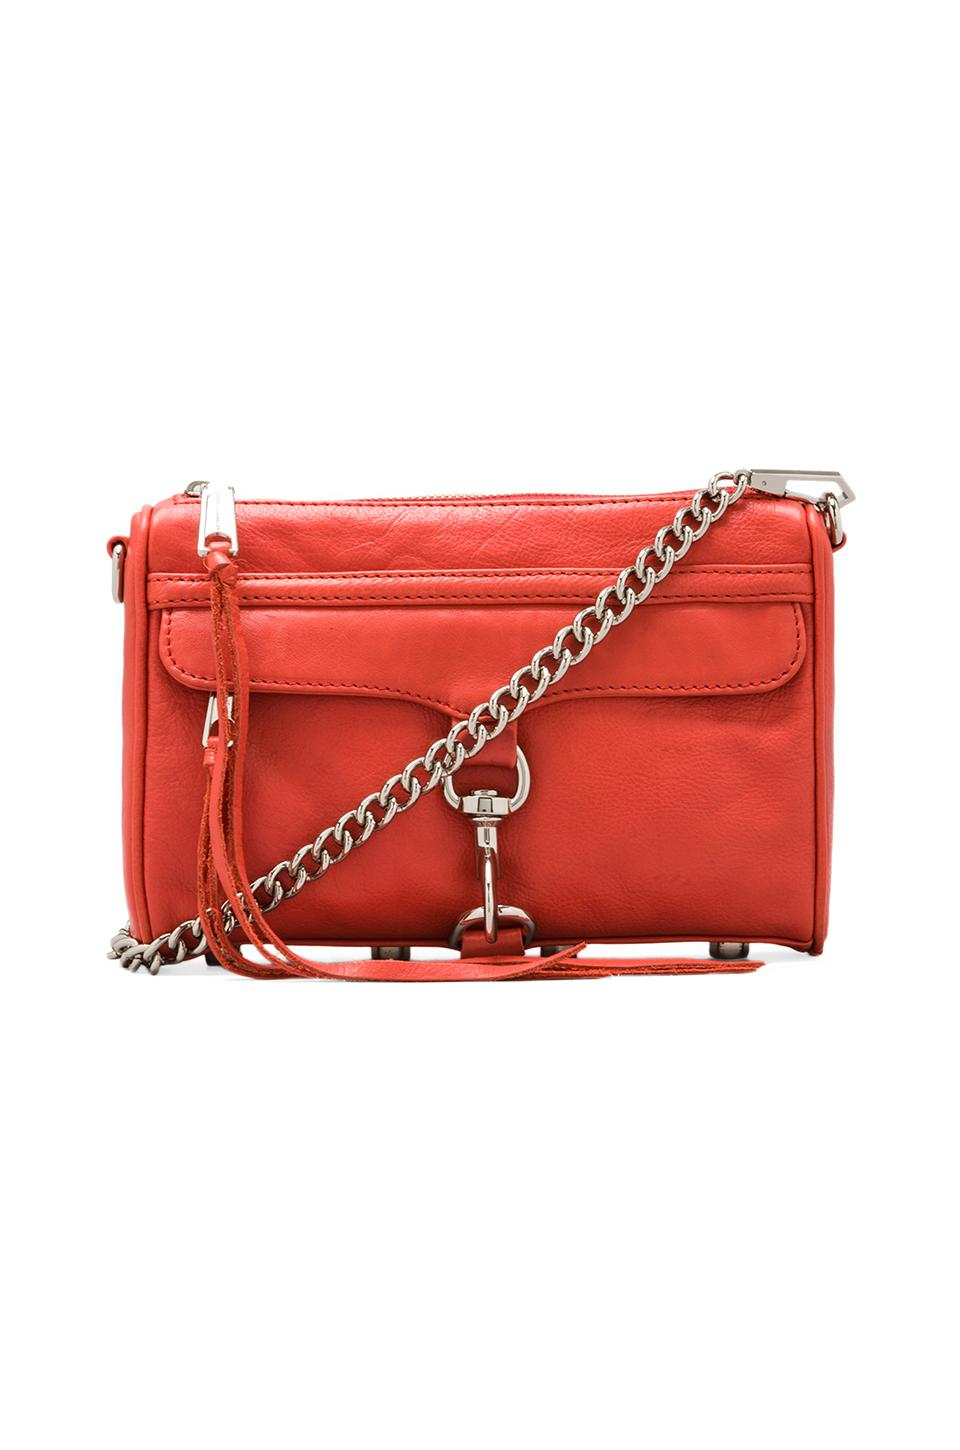 Rebecca Minkoff Mini Mac in Coral